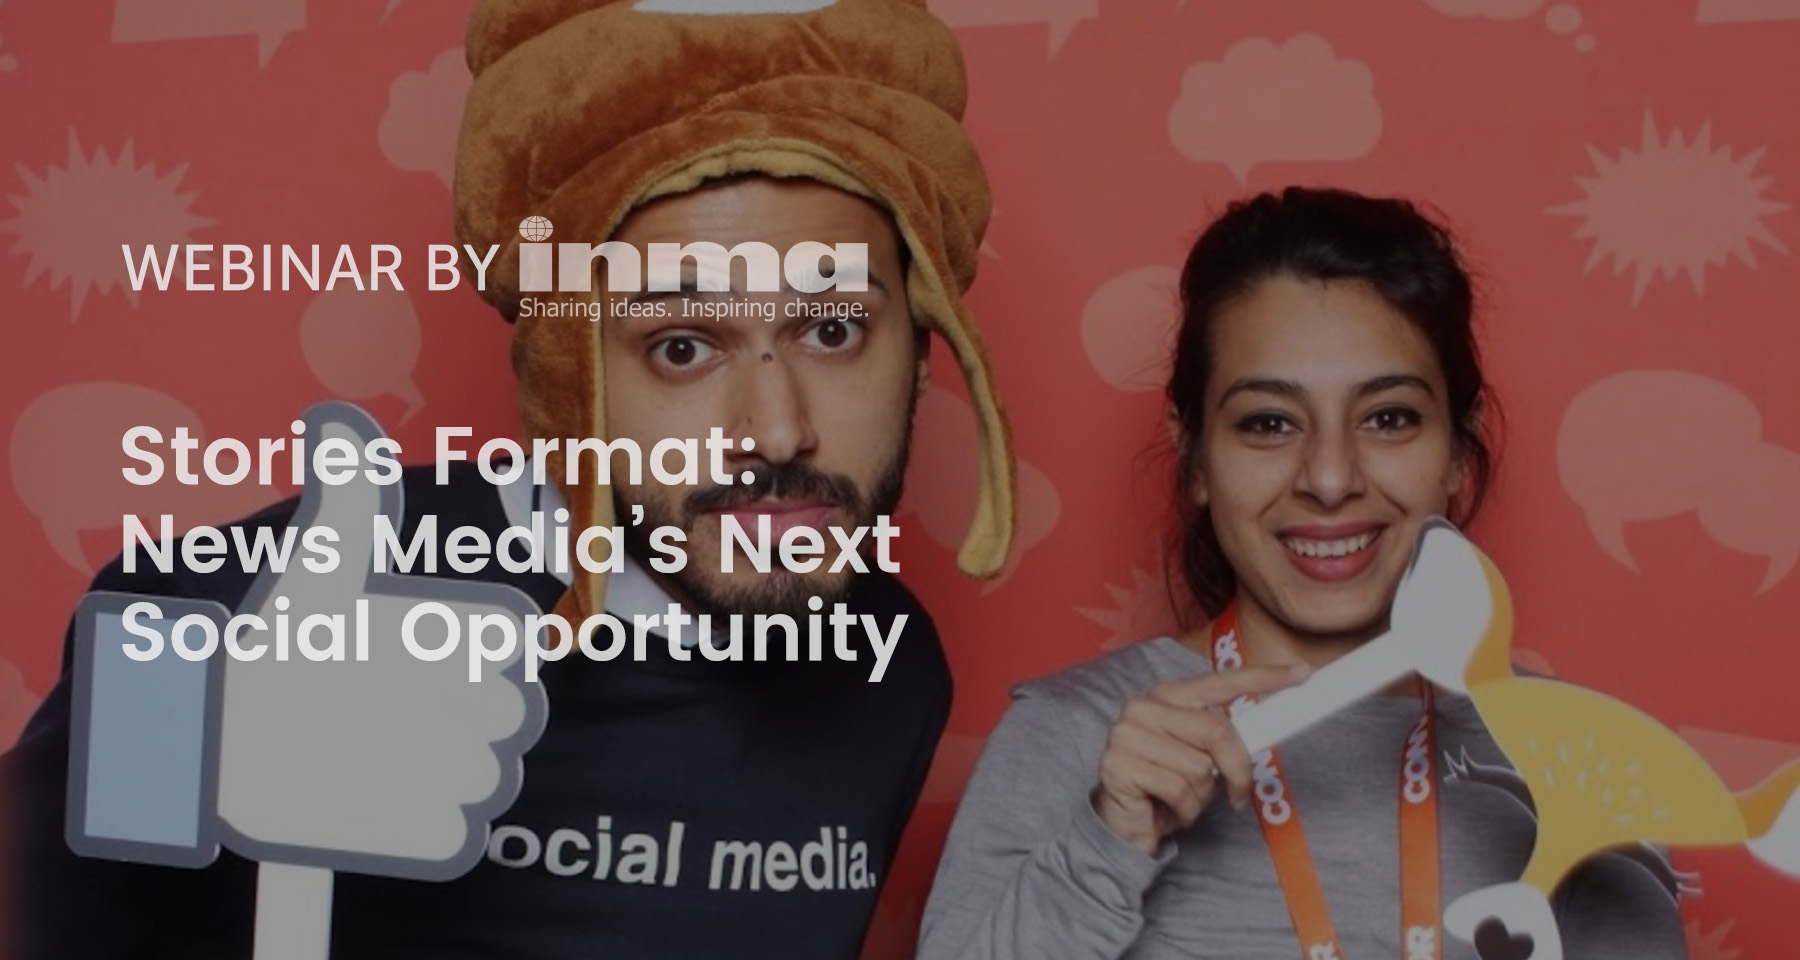 Upcoming INMA Webinar: Stories format is news media's next social opportunity